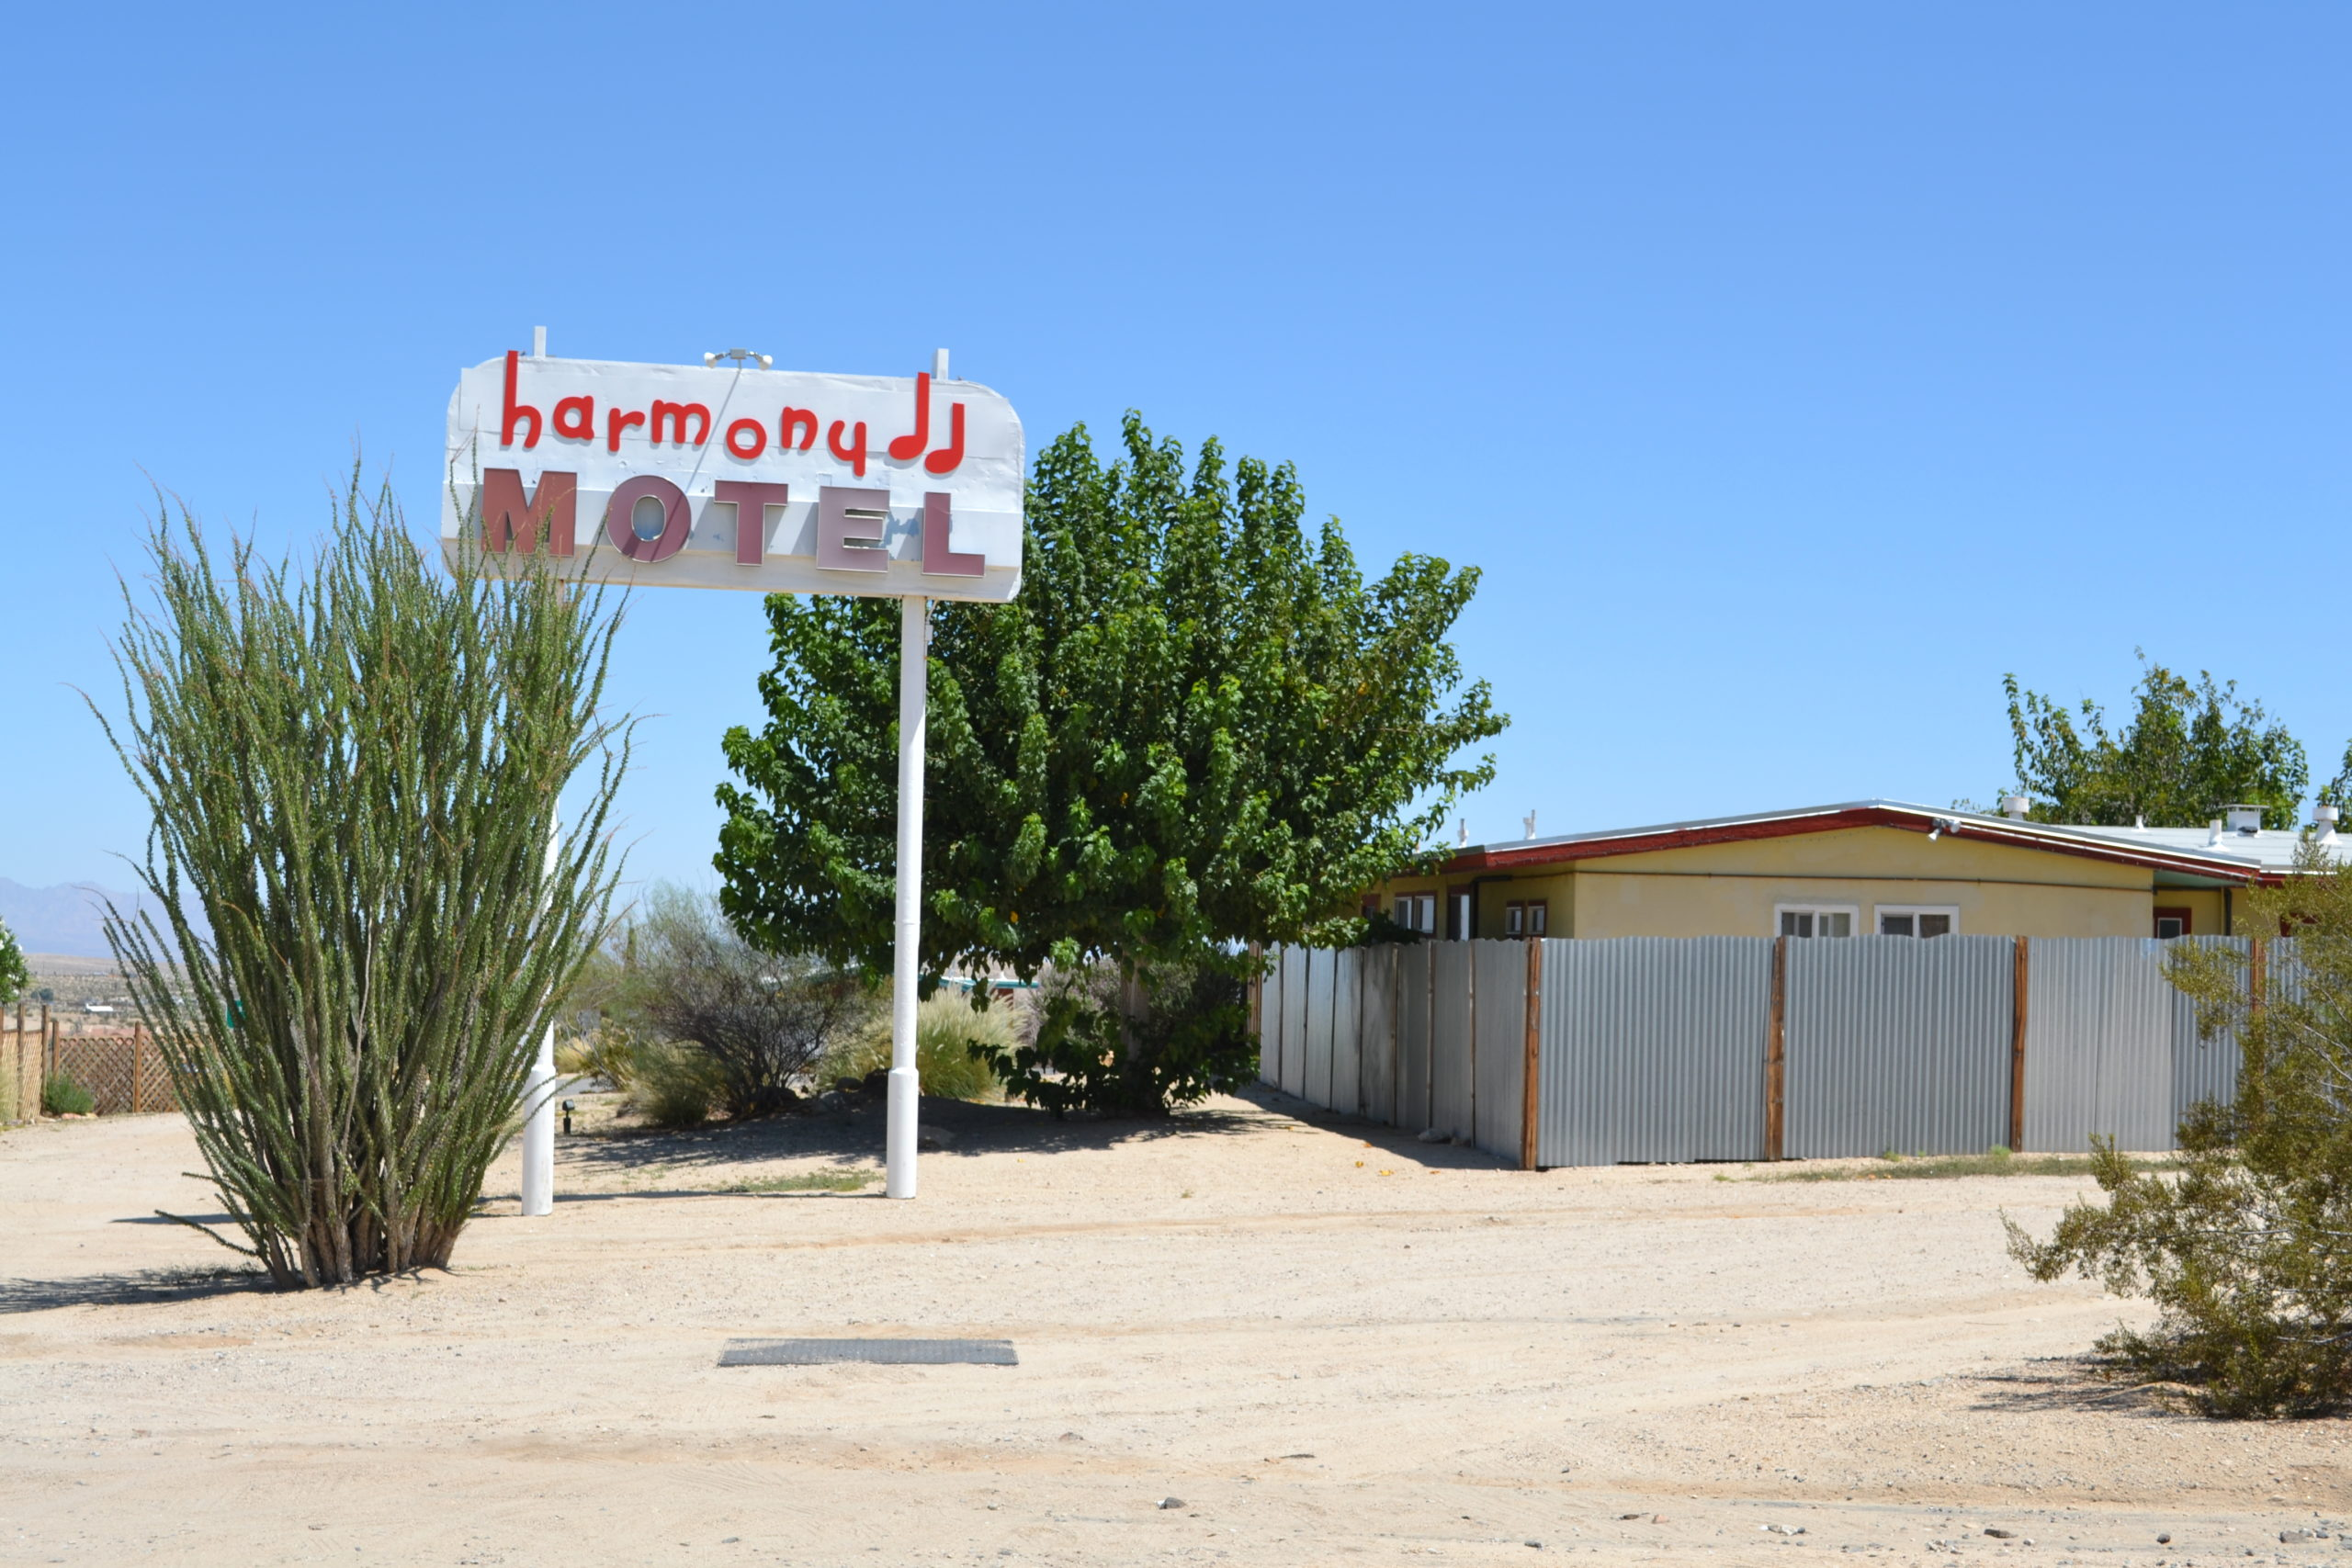 joshua-tree-national-park-adventure-tour-camping-hiking-climbing-the-harmony-motel-us-still-havent-found-what-i-am-looking-for